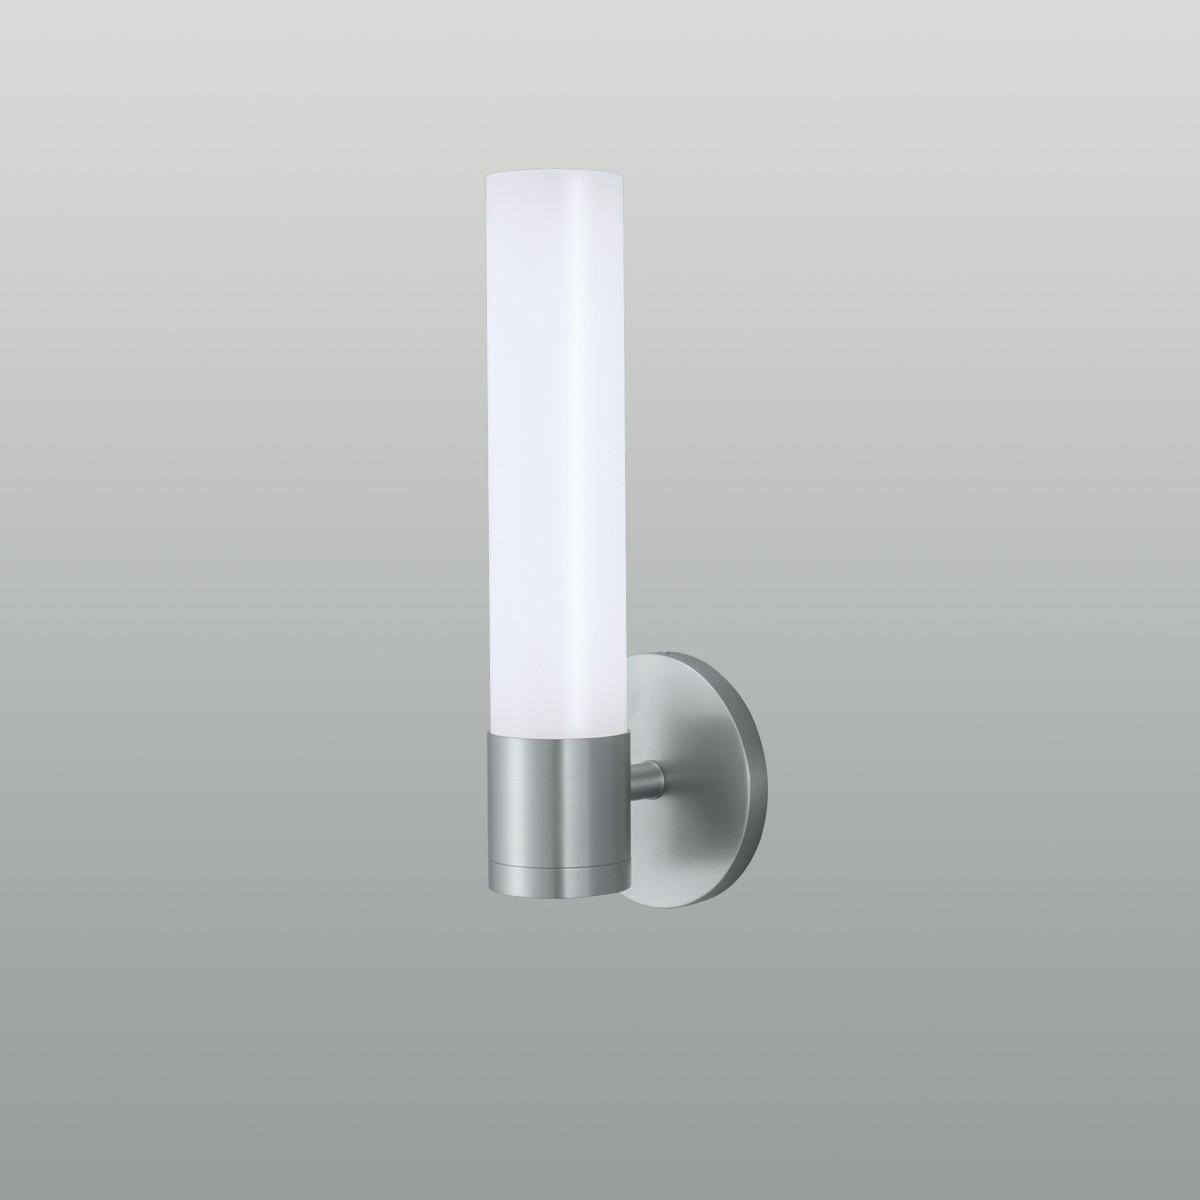 Led Swing Arm Wall Lamps Energy Efficient Eco Friendly